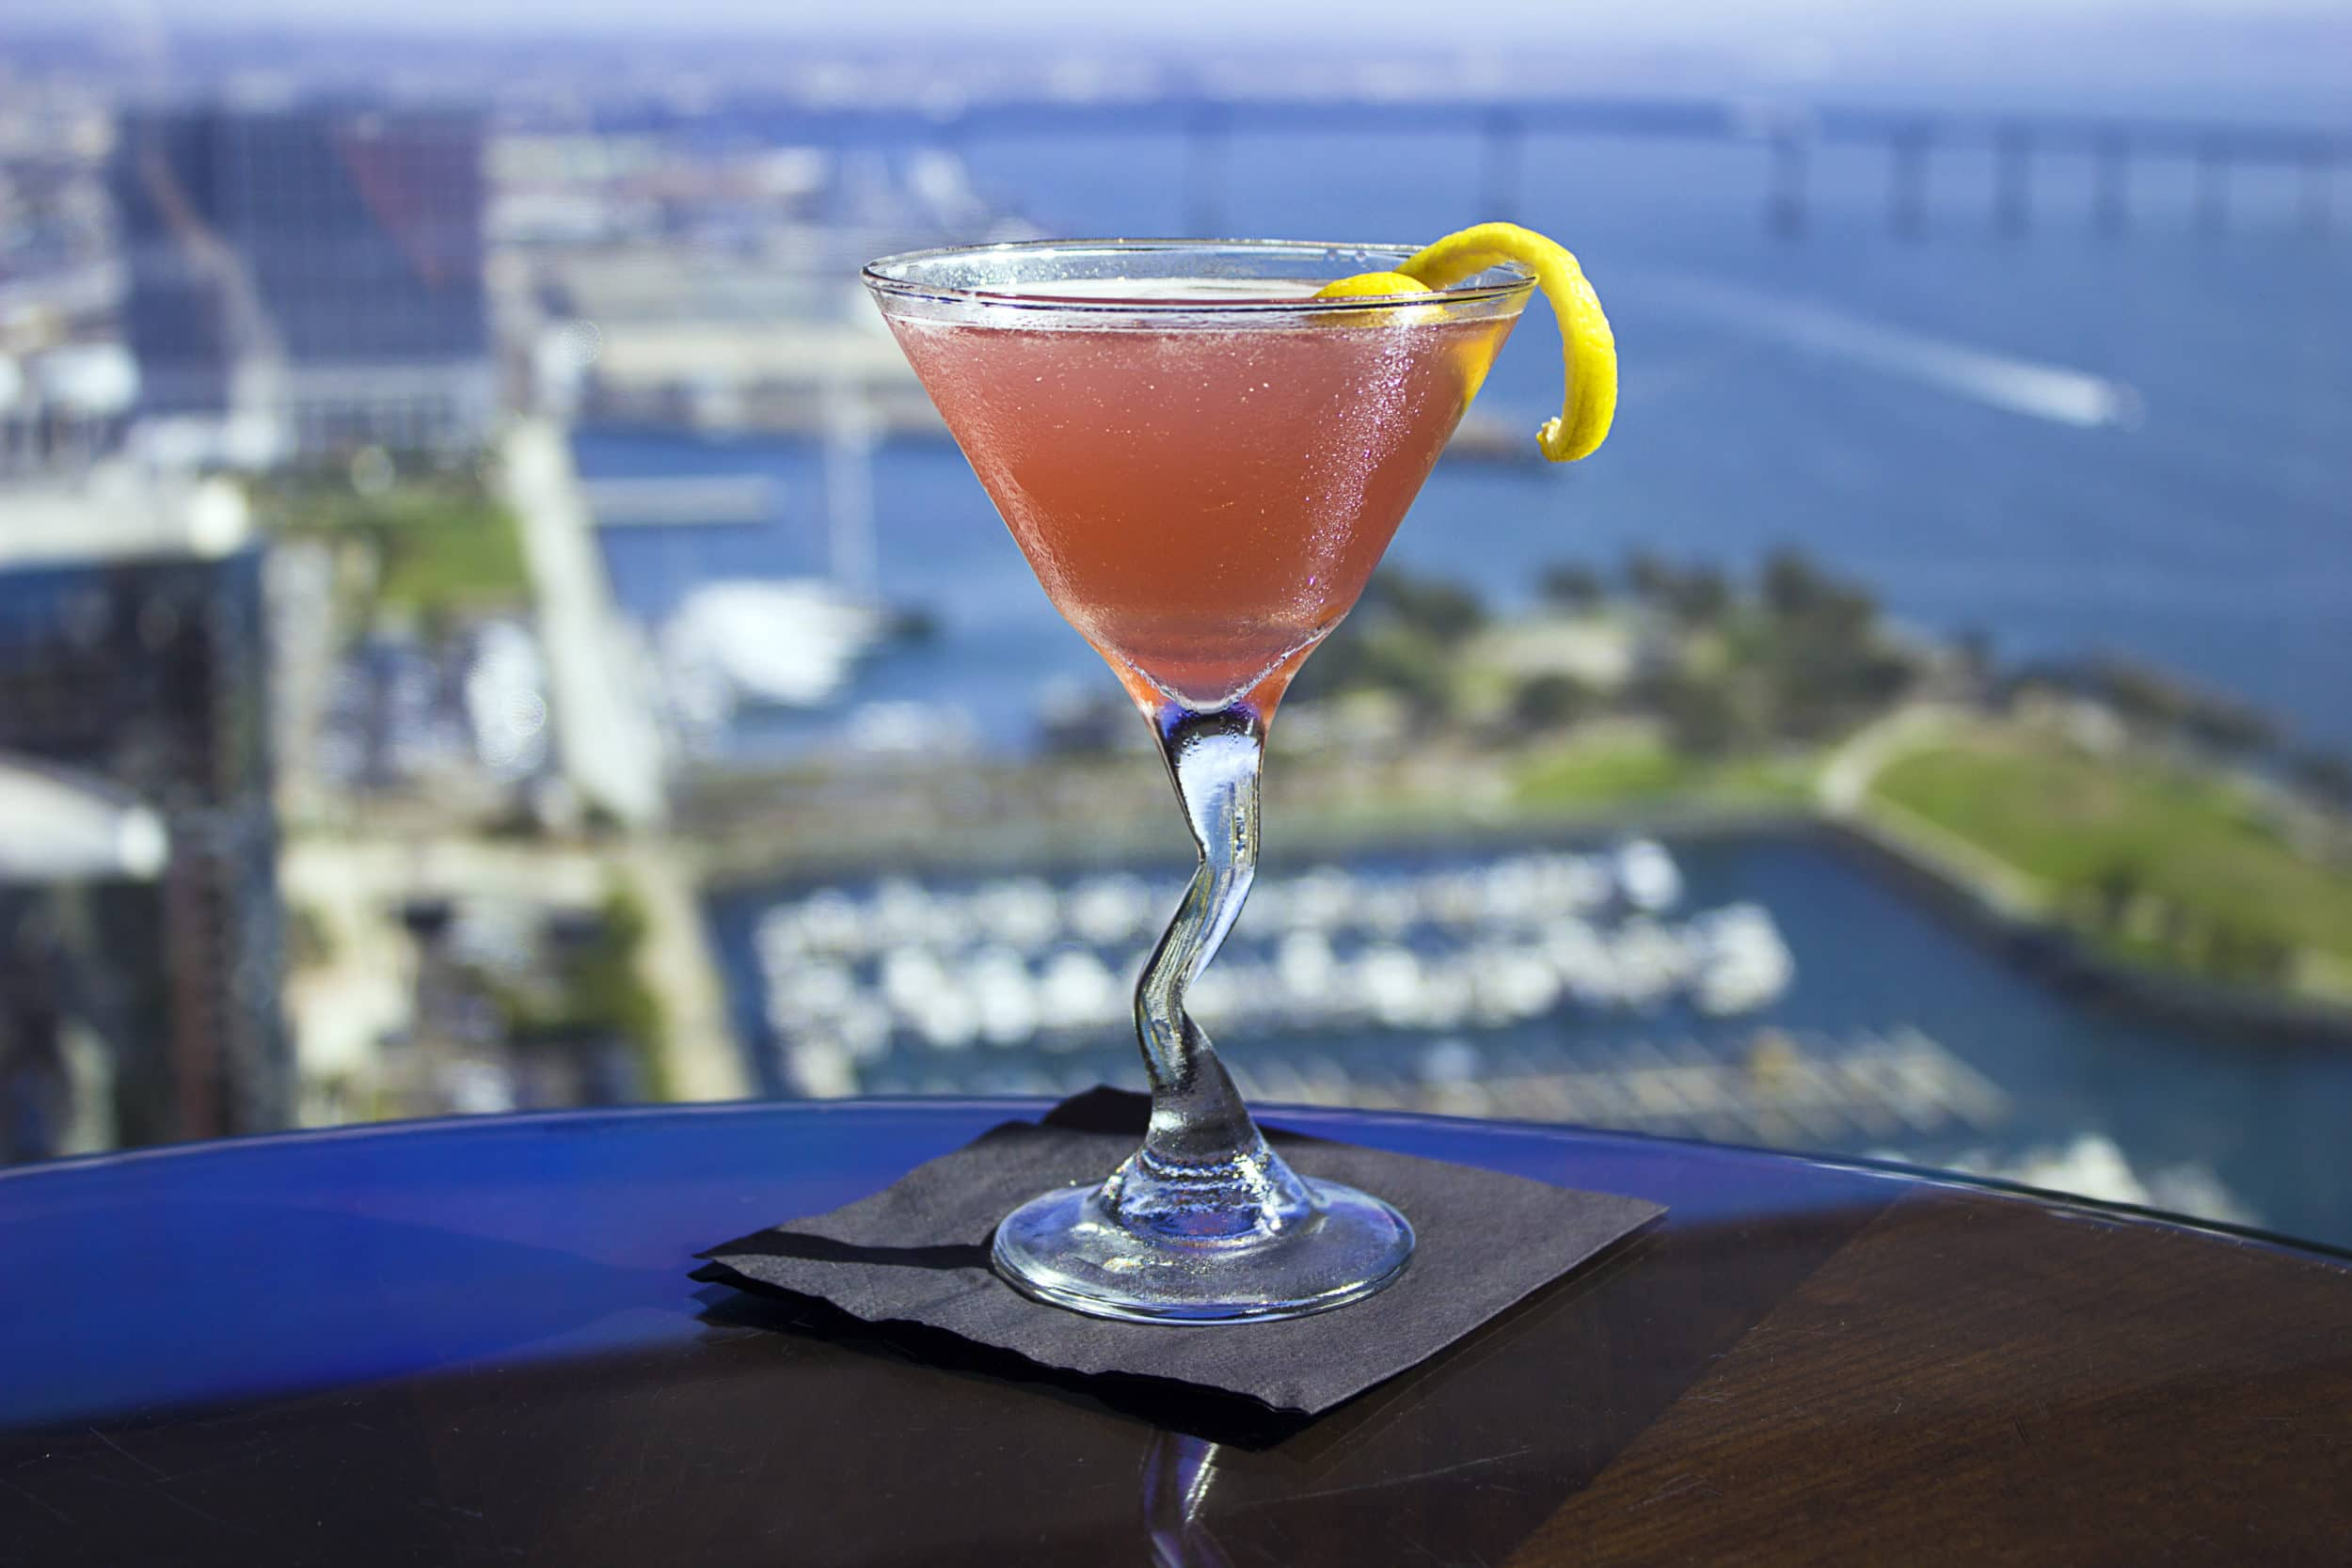 Top of the Hyatt San Diego at Manchester Grand Hyatt